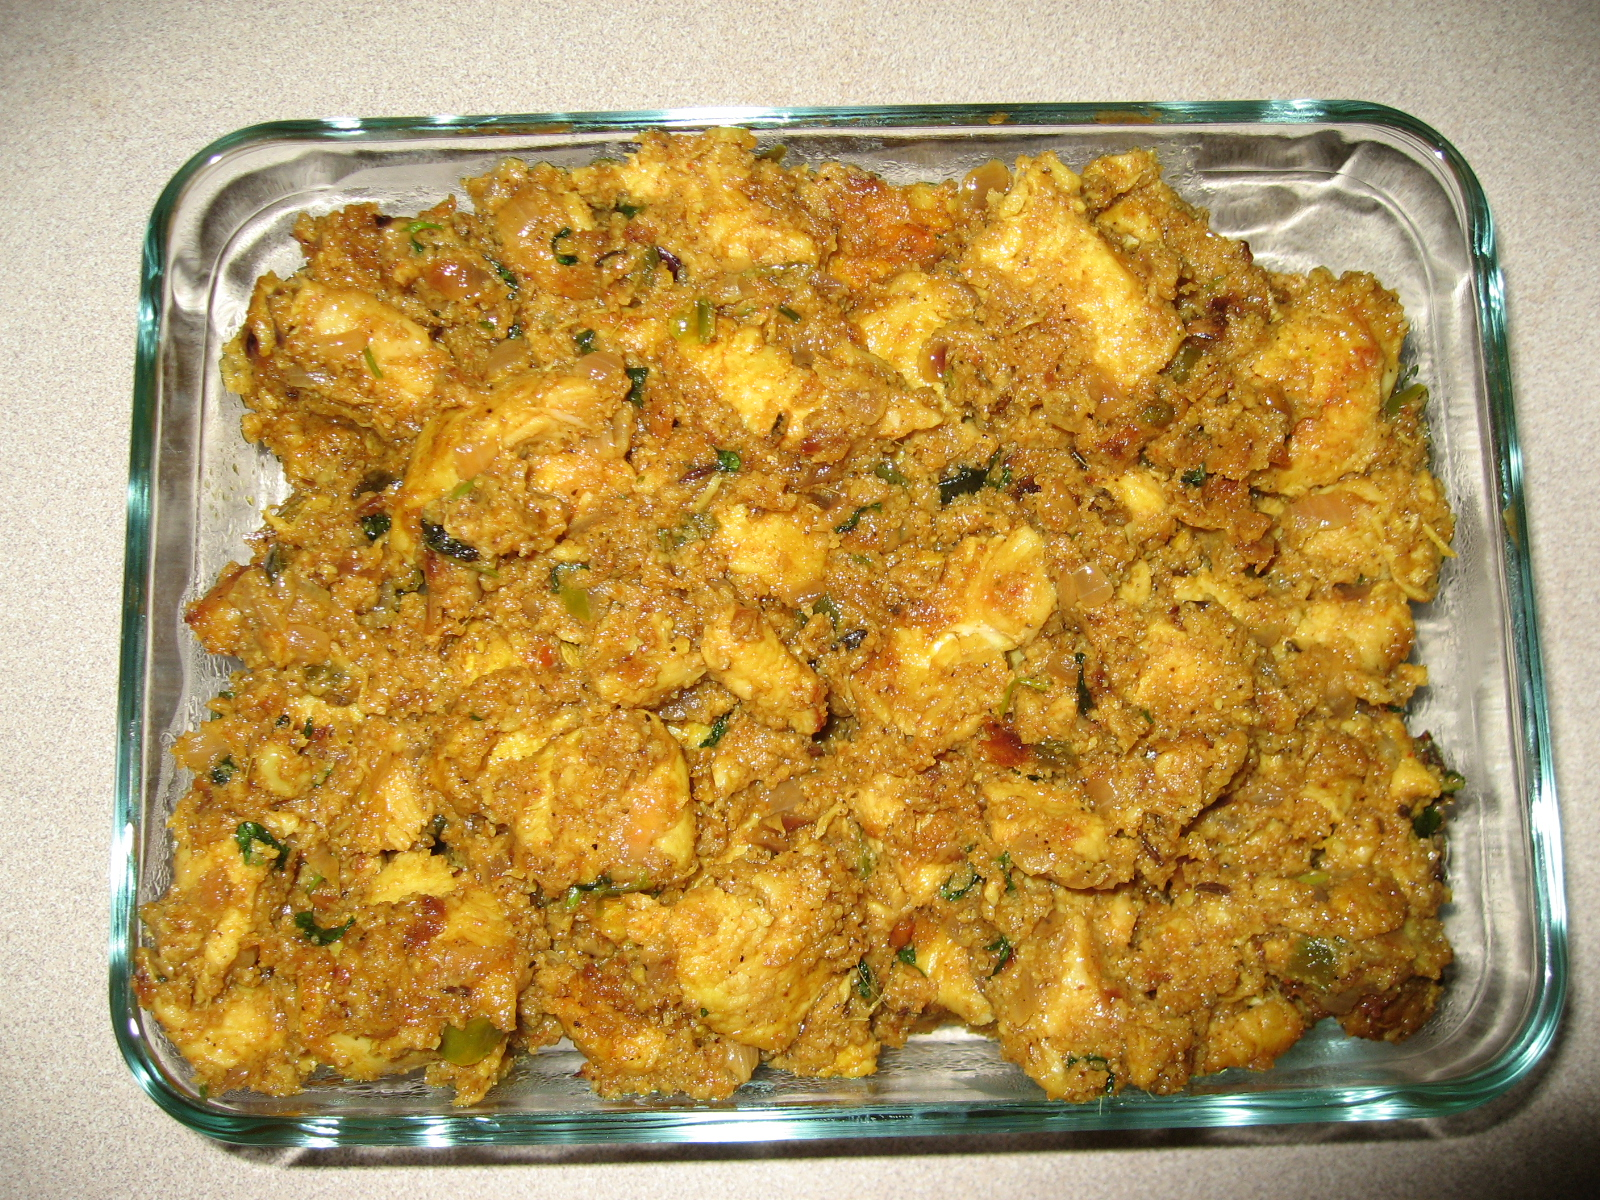 Cake Recipe With Kadai: Kadai Chicken Recipe By Snigdha